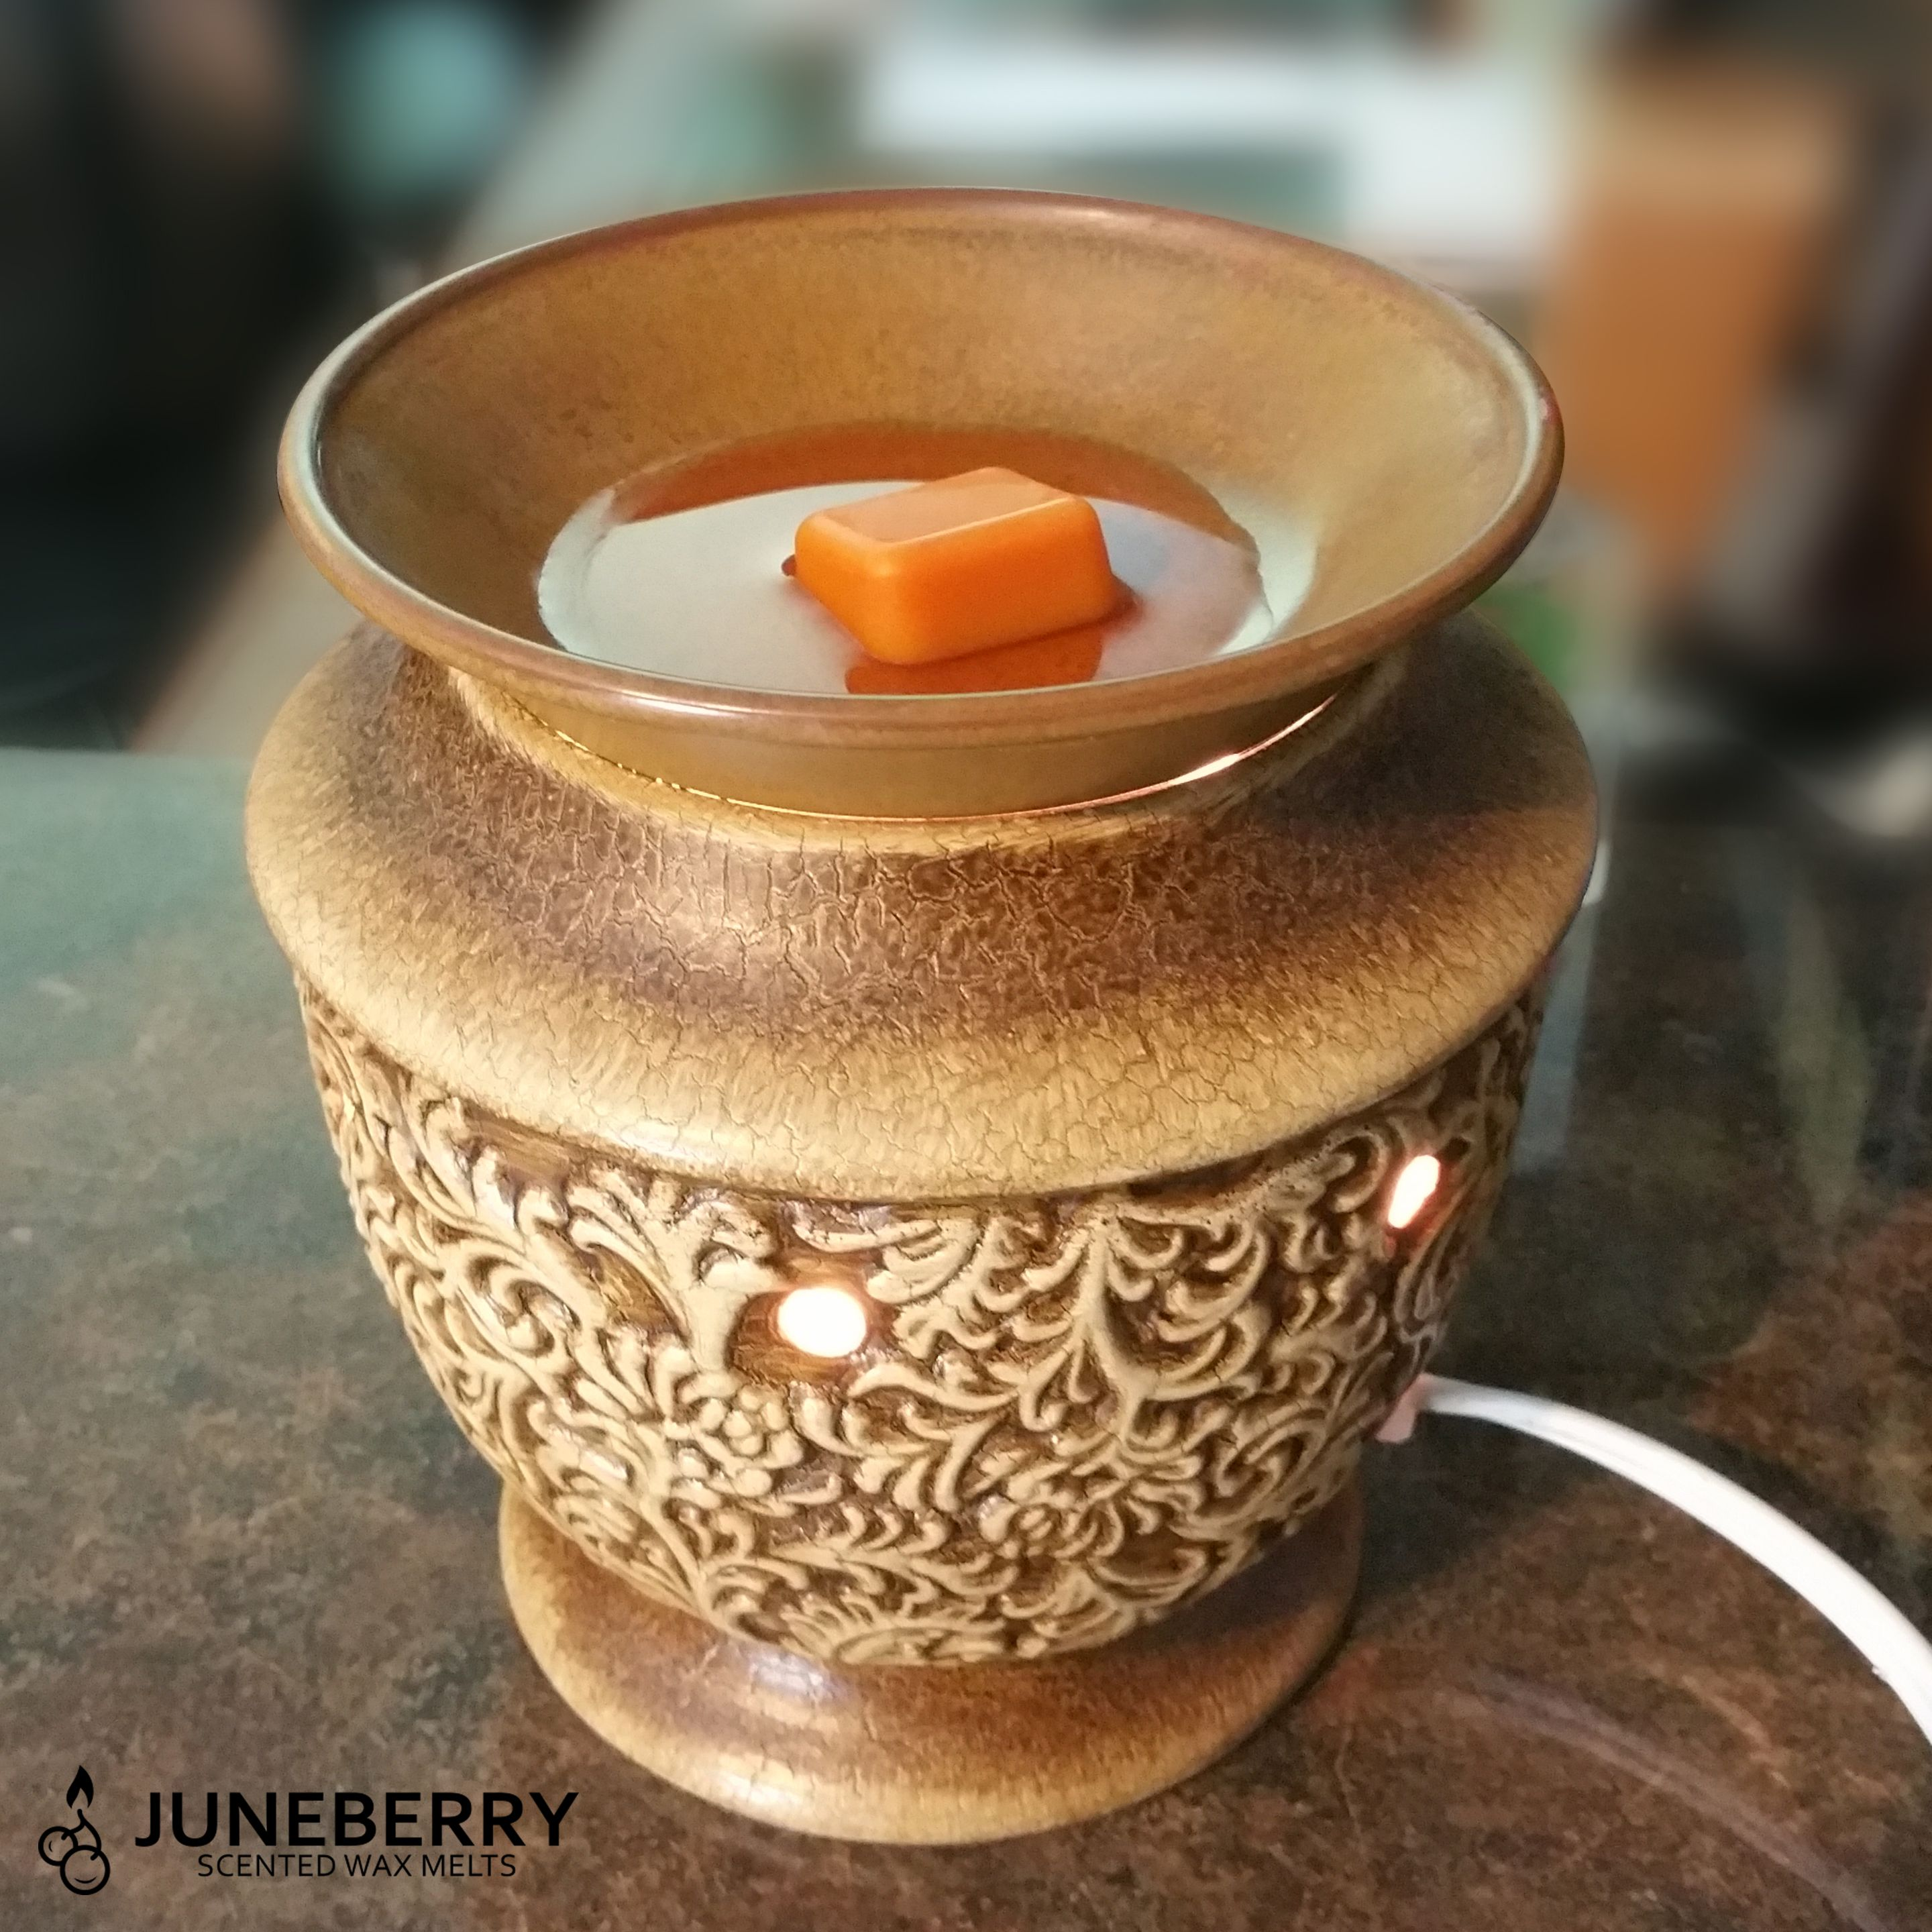 Pin by Juneberry Candle on Wax Warmers | Pinterest